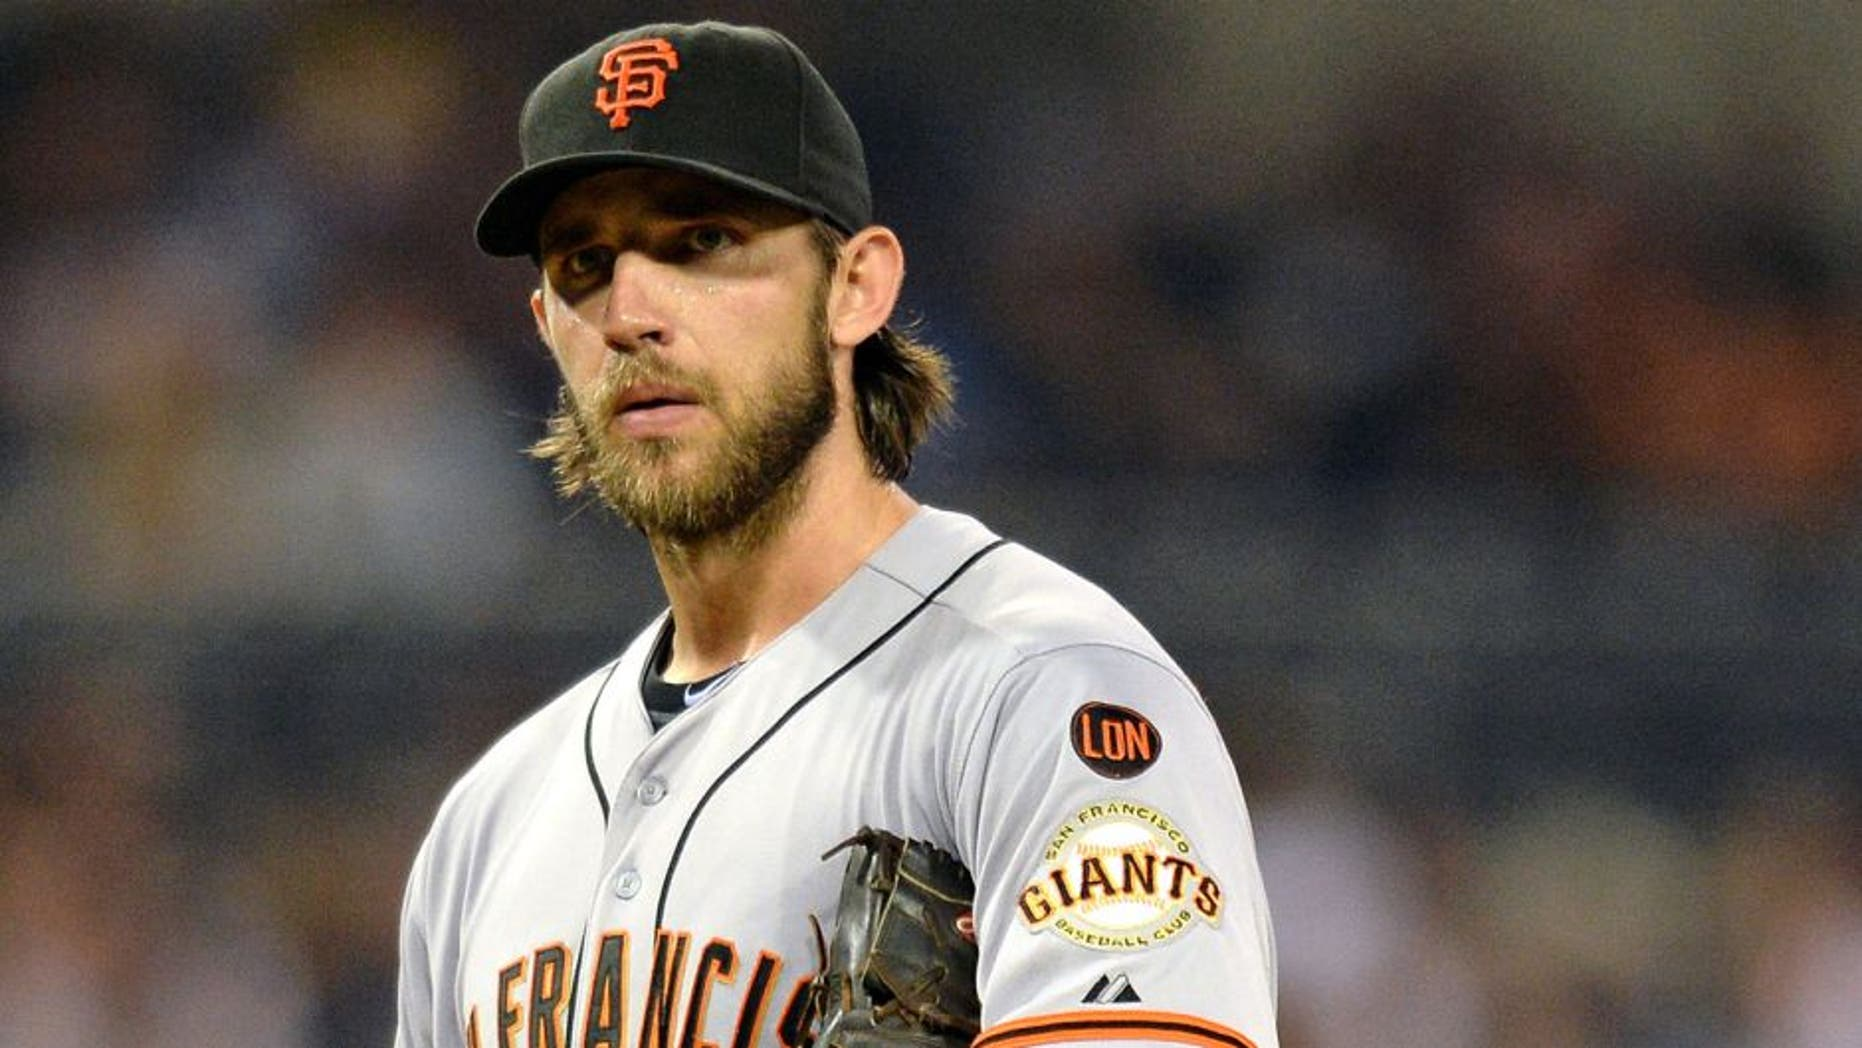 Sep 24, 2015; San Diego, CA, USA; San Francisco Giants starting pitcher Madison Bumgarner (40) looks to the San Diego Padres dugout after right fielder Matt Kemp (not pictured) yelled from the dugout at Petco Park. Mandatory Credit: Jake Roth-USA TODAY Sports